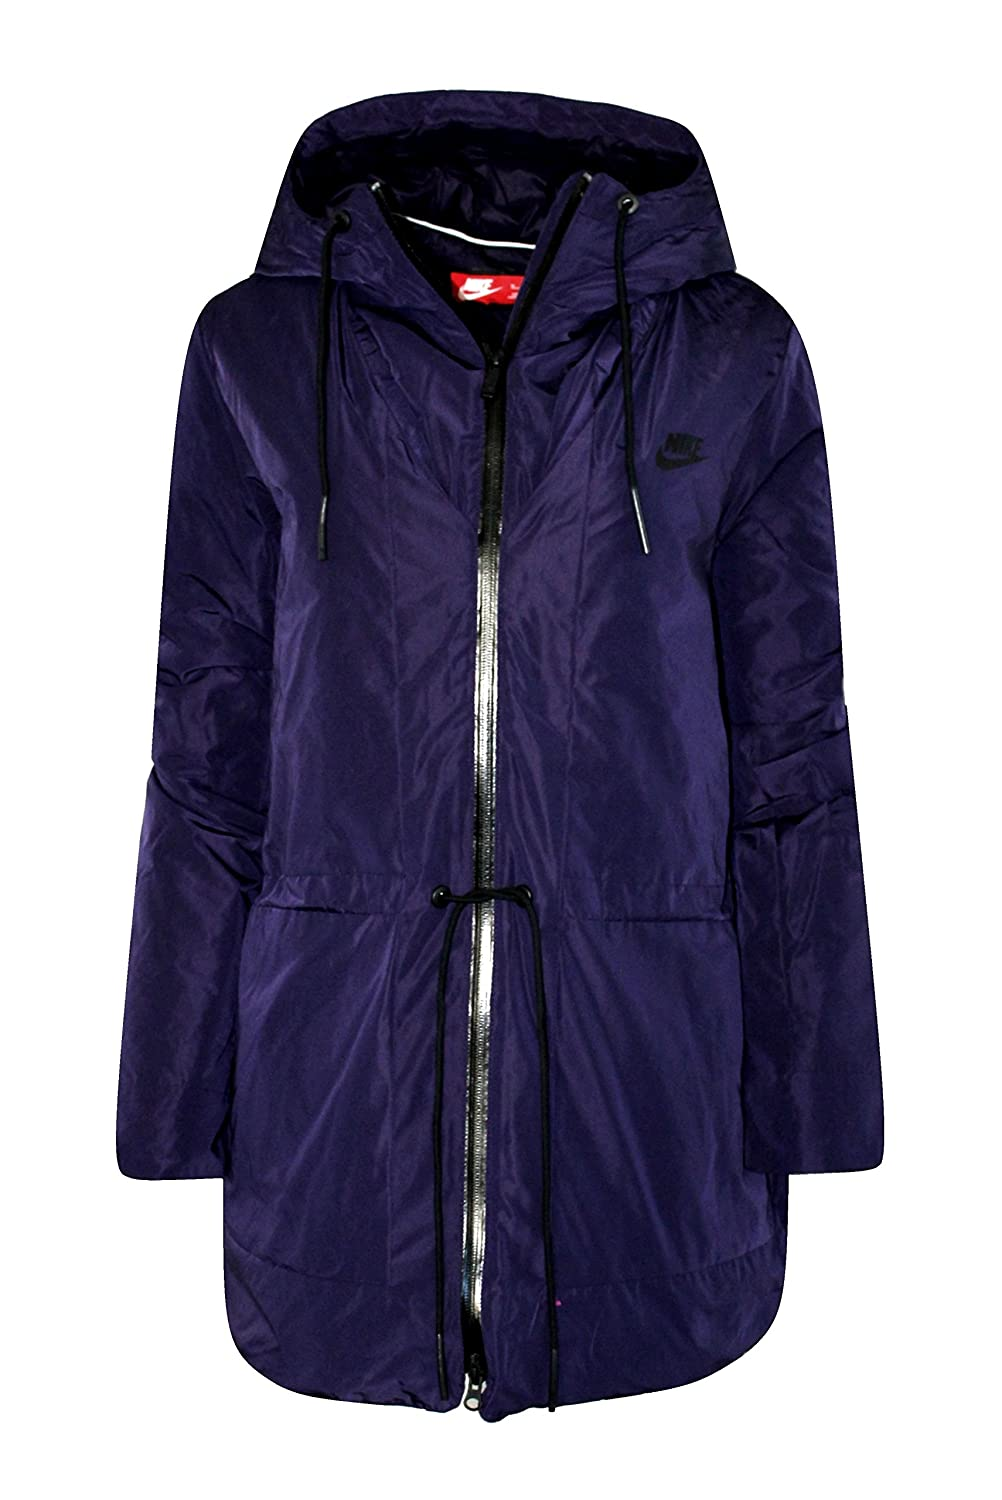 ef34169d2ad2 Nike Women s Insulated Down Hooded Parka Jacket Purple at Amazon Women s  Coats Shop